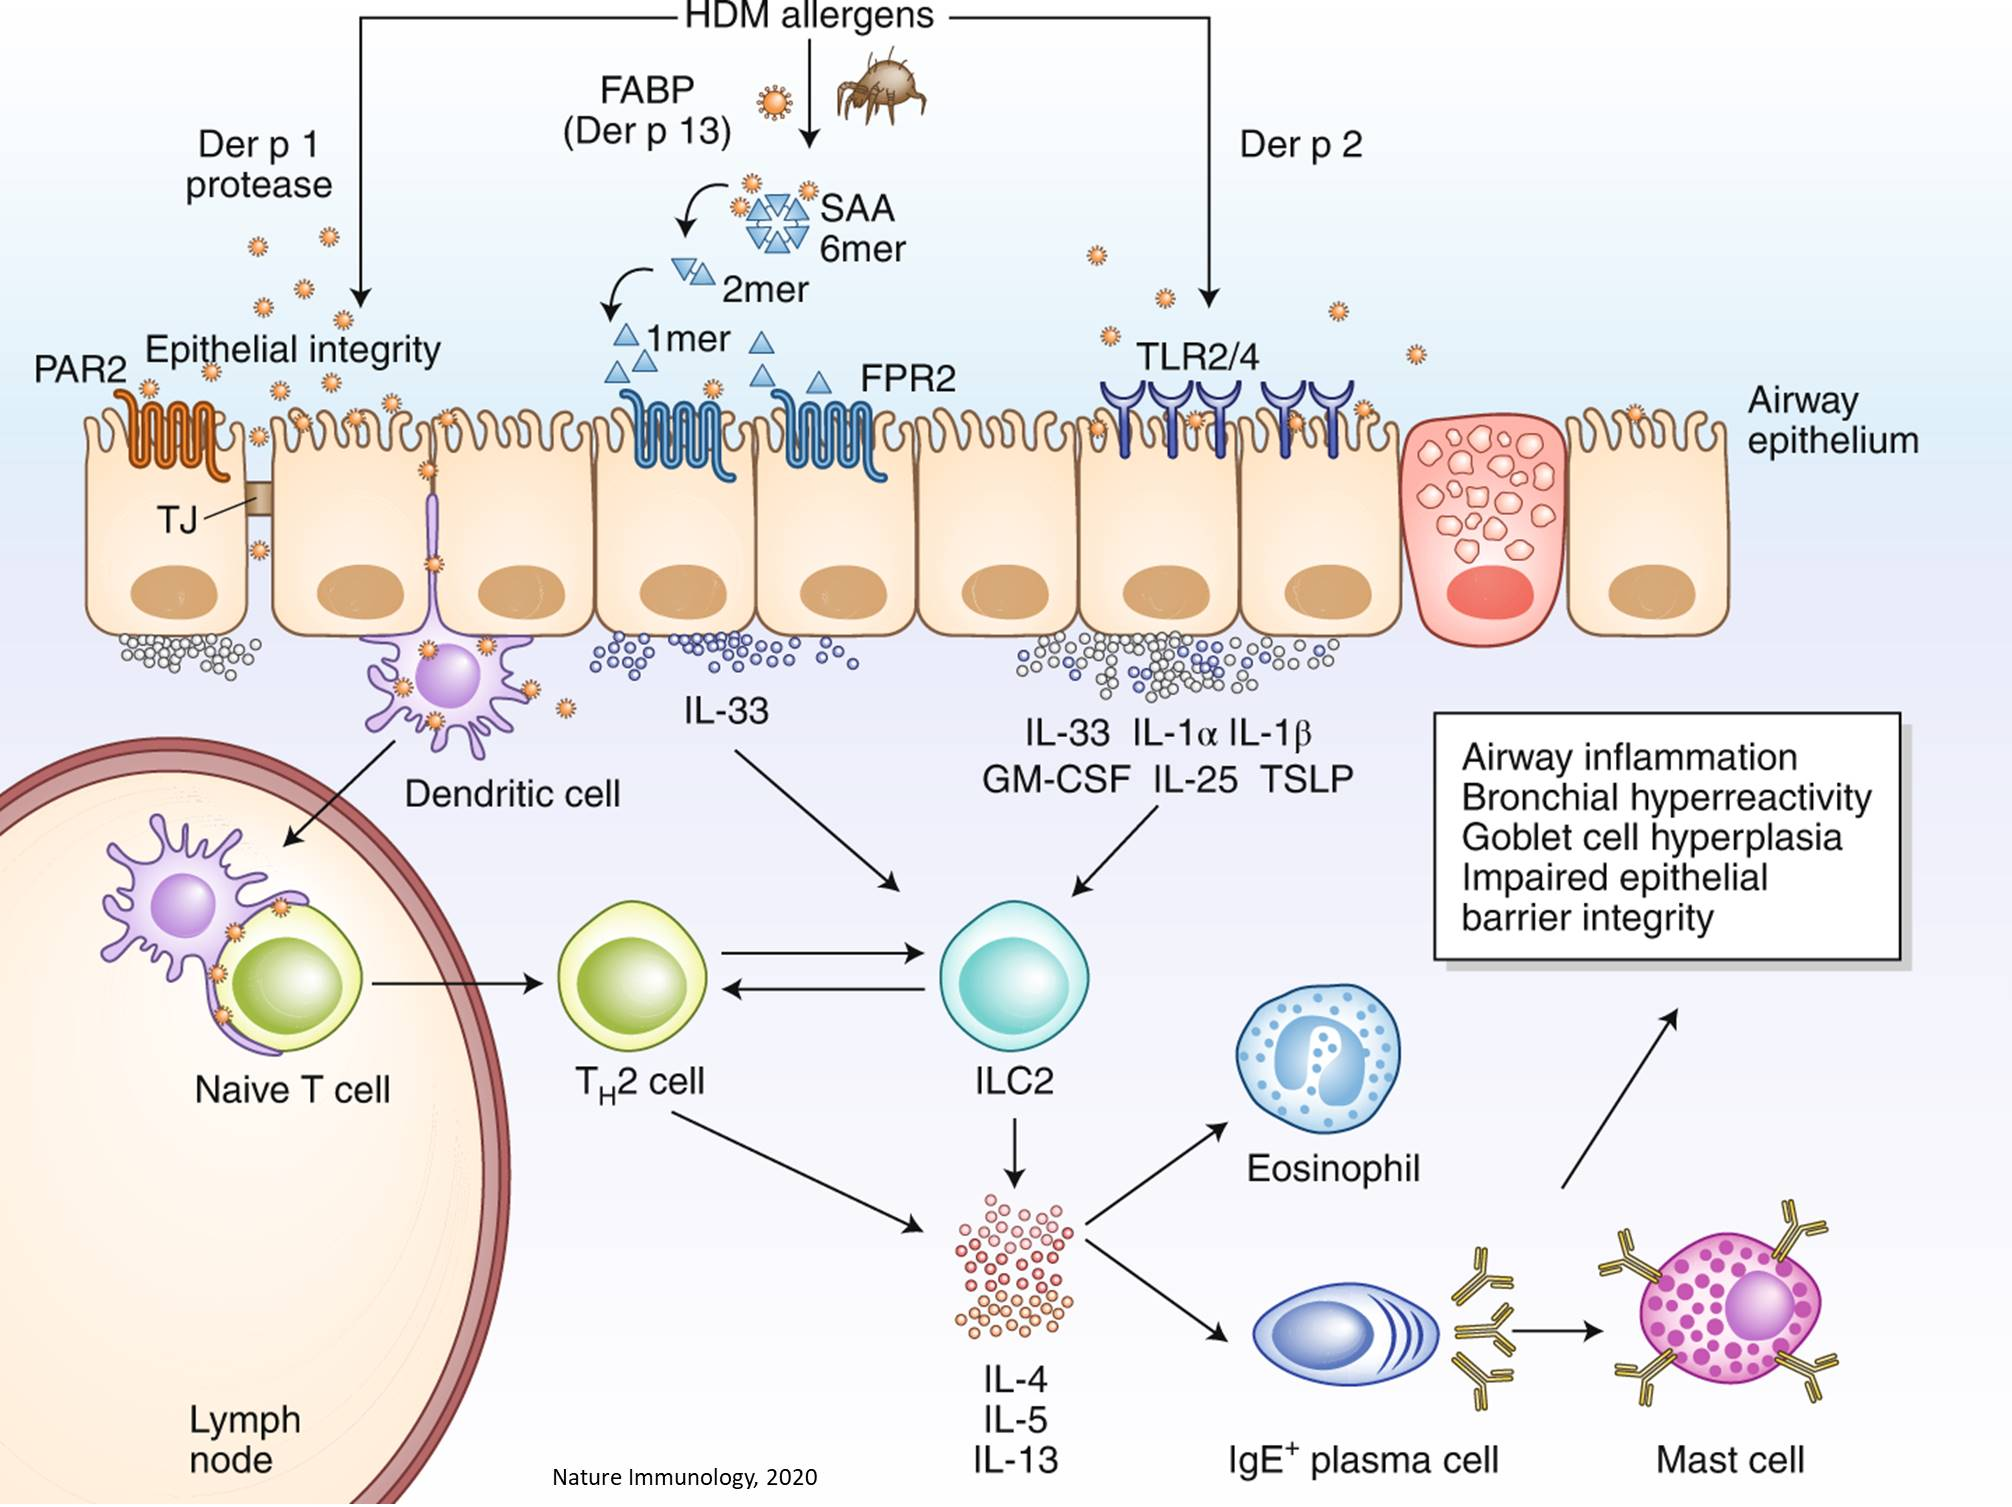 A new allergy signaling pathway identified!